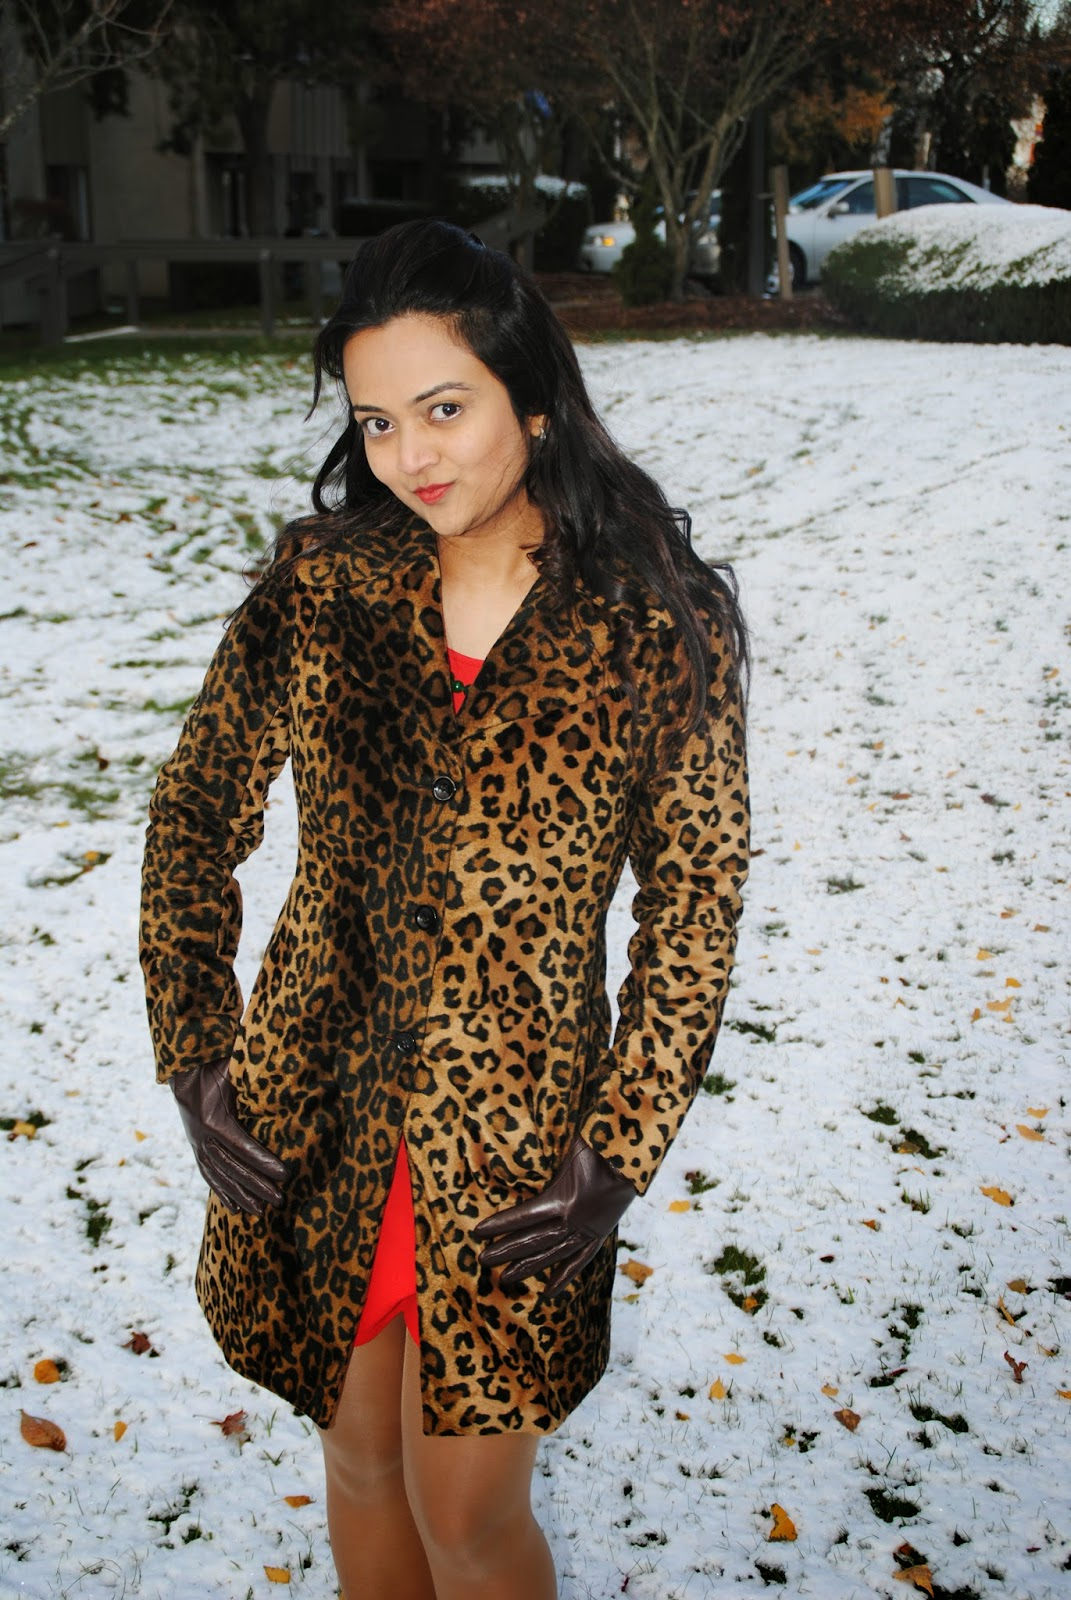 indian fashion blogger, Leopard printed coats, Designer leopard printed jacket, Fashionable leopard prints, Indian Lady with a leopard printed jacket, Seattle winter fashion, beautiful girl in snow